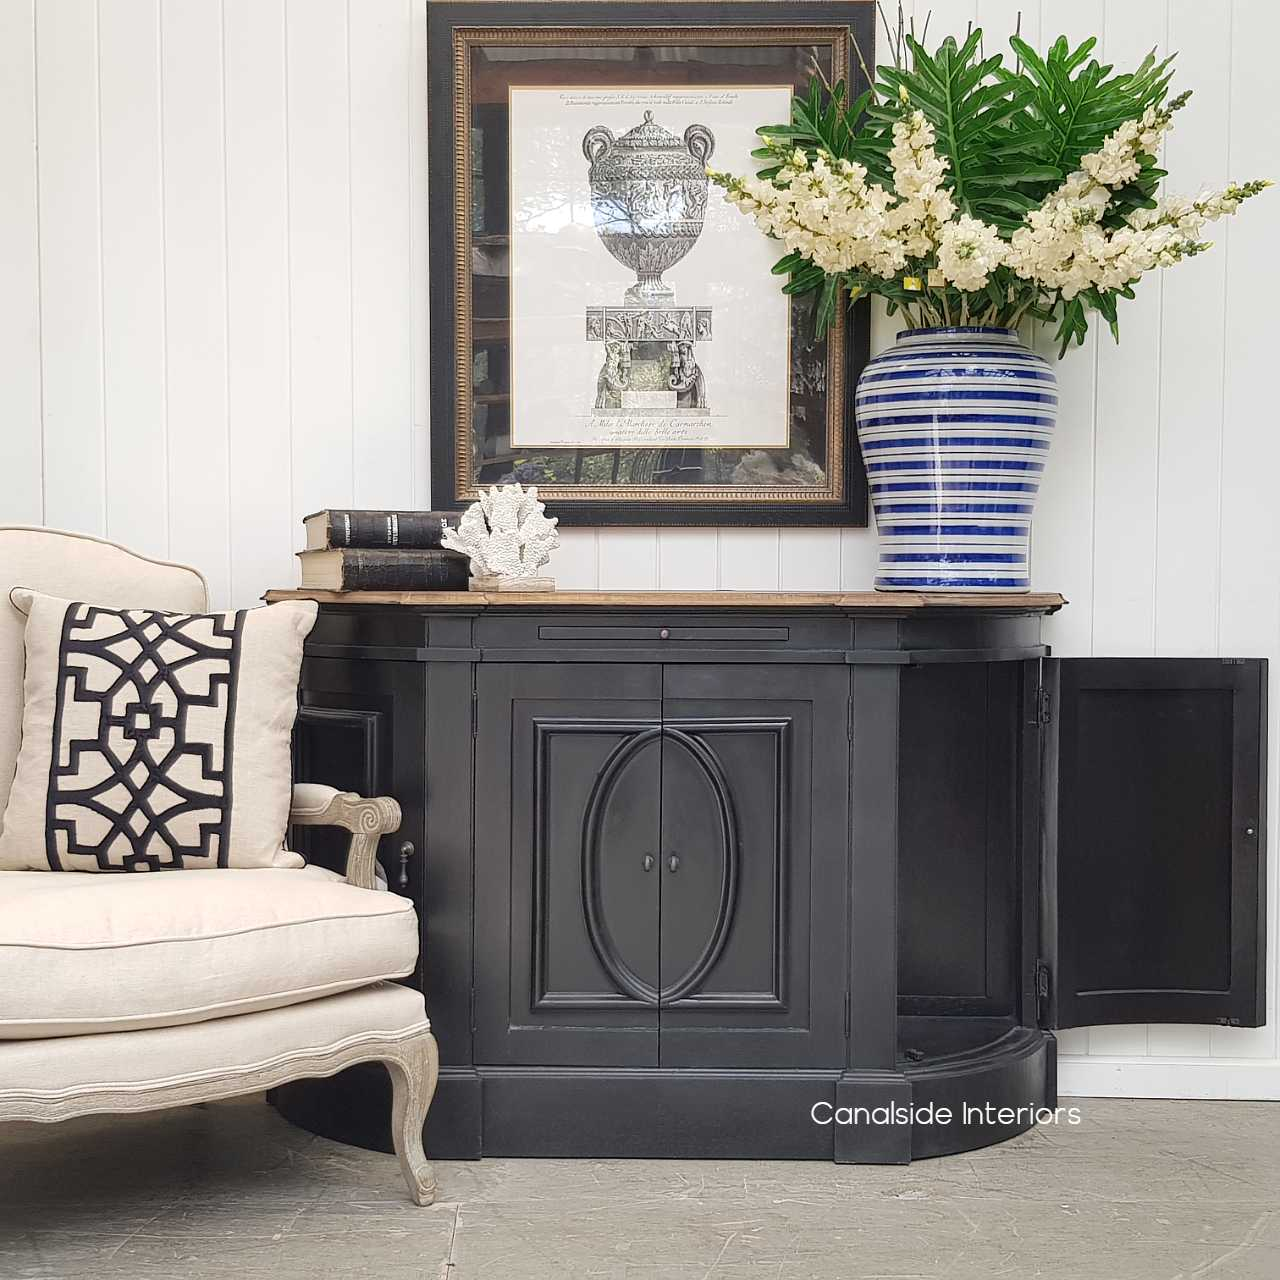 Bastian Small Sideboard Distressed Charcoal Weathered Oak  FRENCH  FURNITURE, HAMPTONS Style, PLANTATION Style, LIVING Room, LIVING TV Media & Storage, TABLES Sideboards & Buffets, STORAGE, STORAGE Sideboards & Buffets